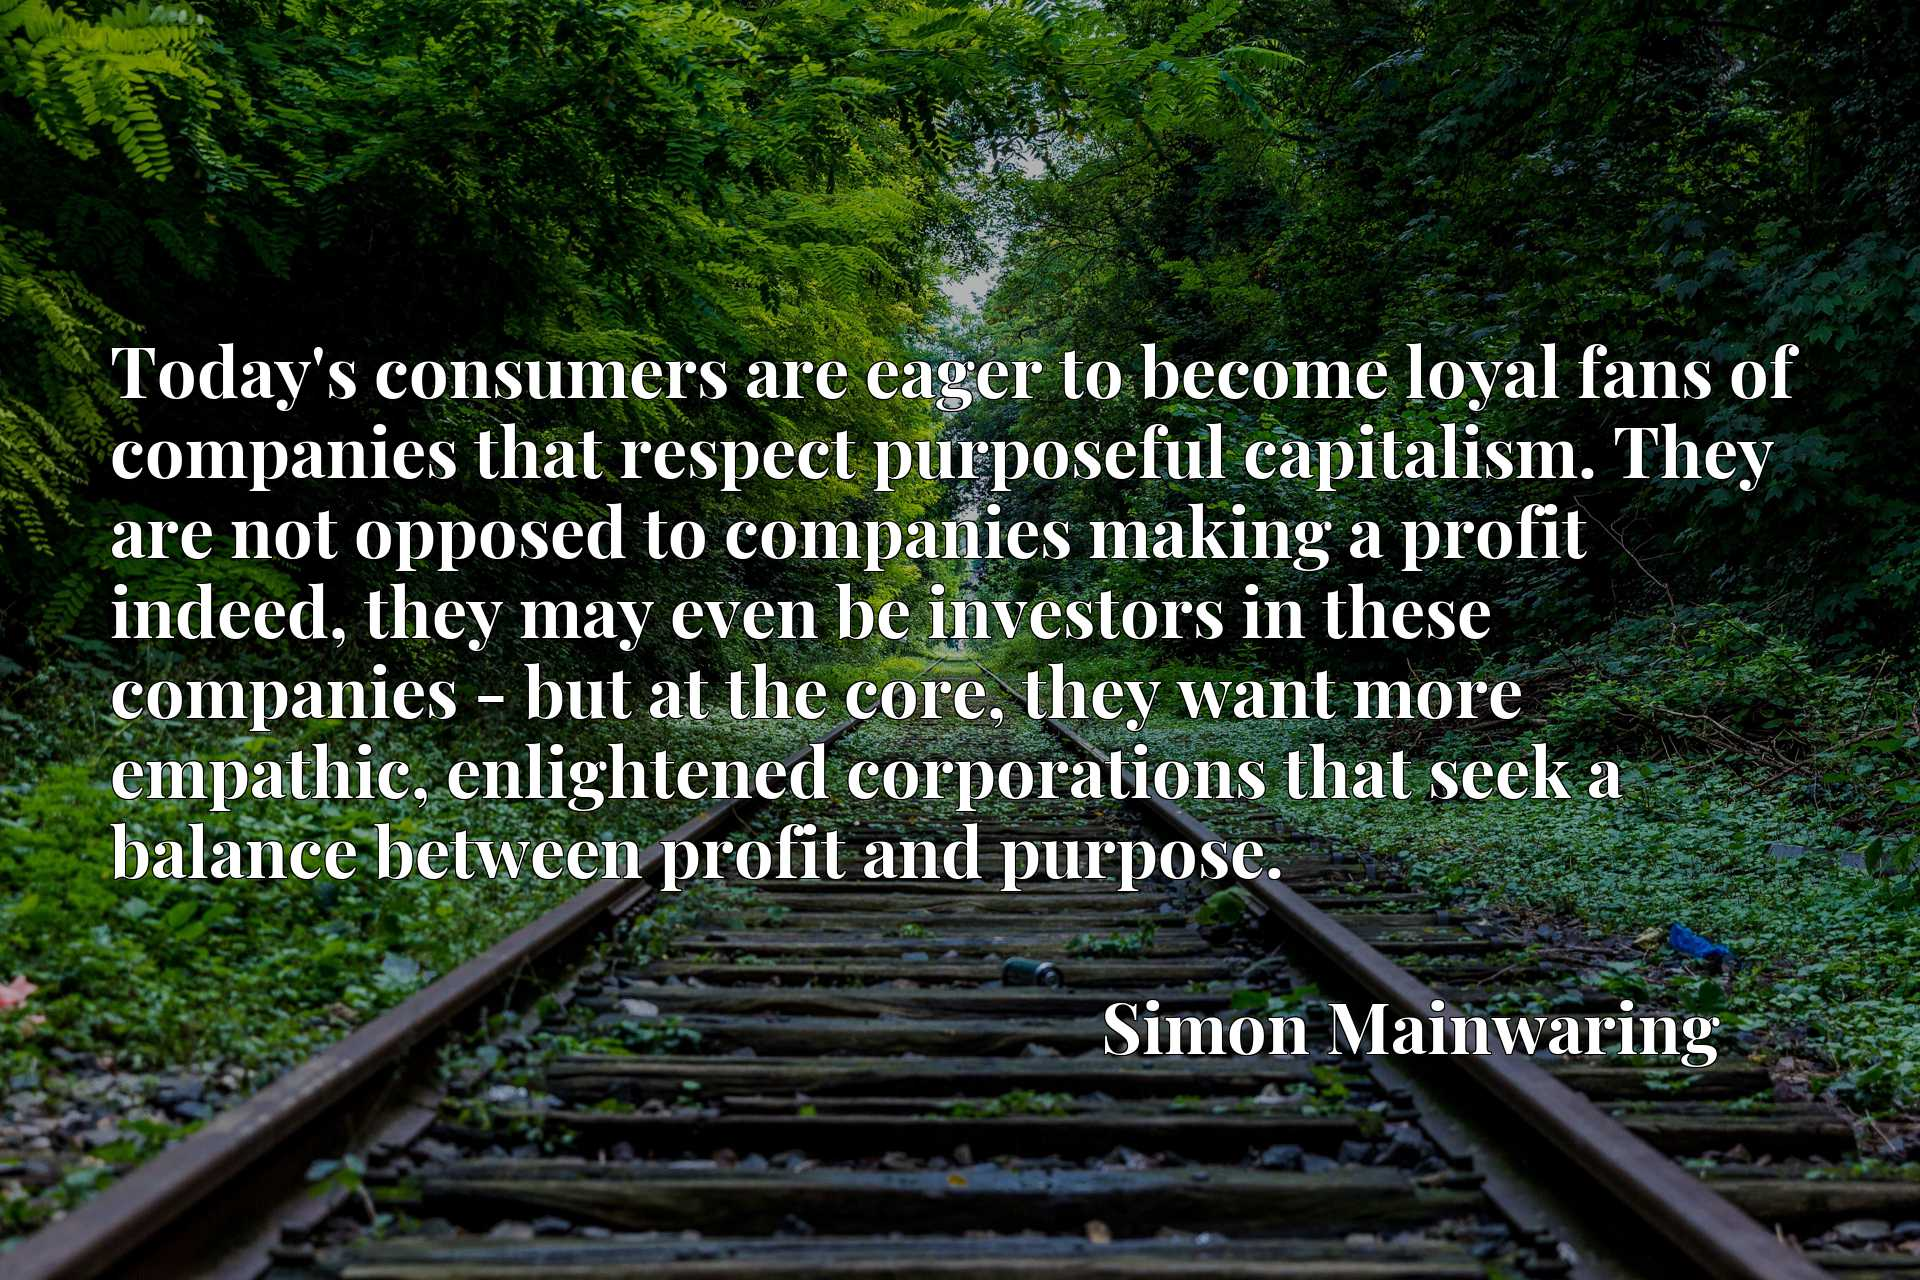 Today's consumers are eager to become loyal fans of companies that respect purposeful capitalism. They are not opposed to companies making a profit indeed, they may even be investors in these companies - but at the core, they want more empathic, enlightened corporations that seek a balance between profit and purpose.